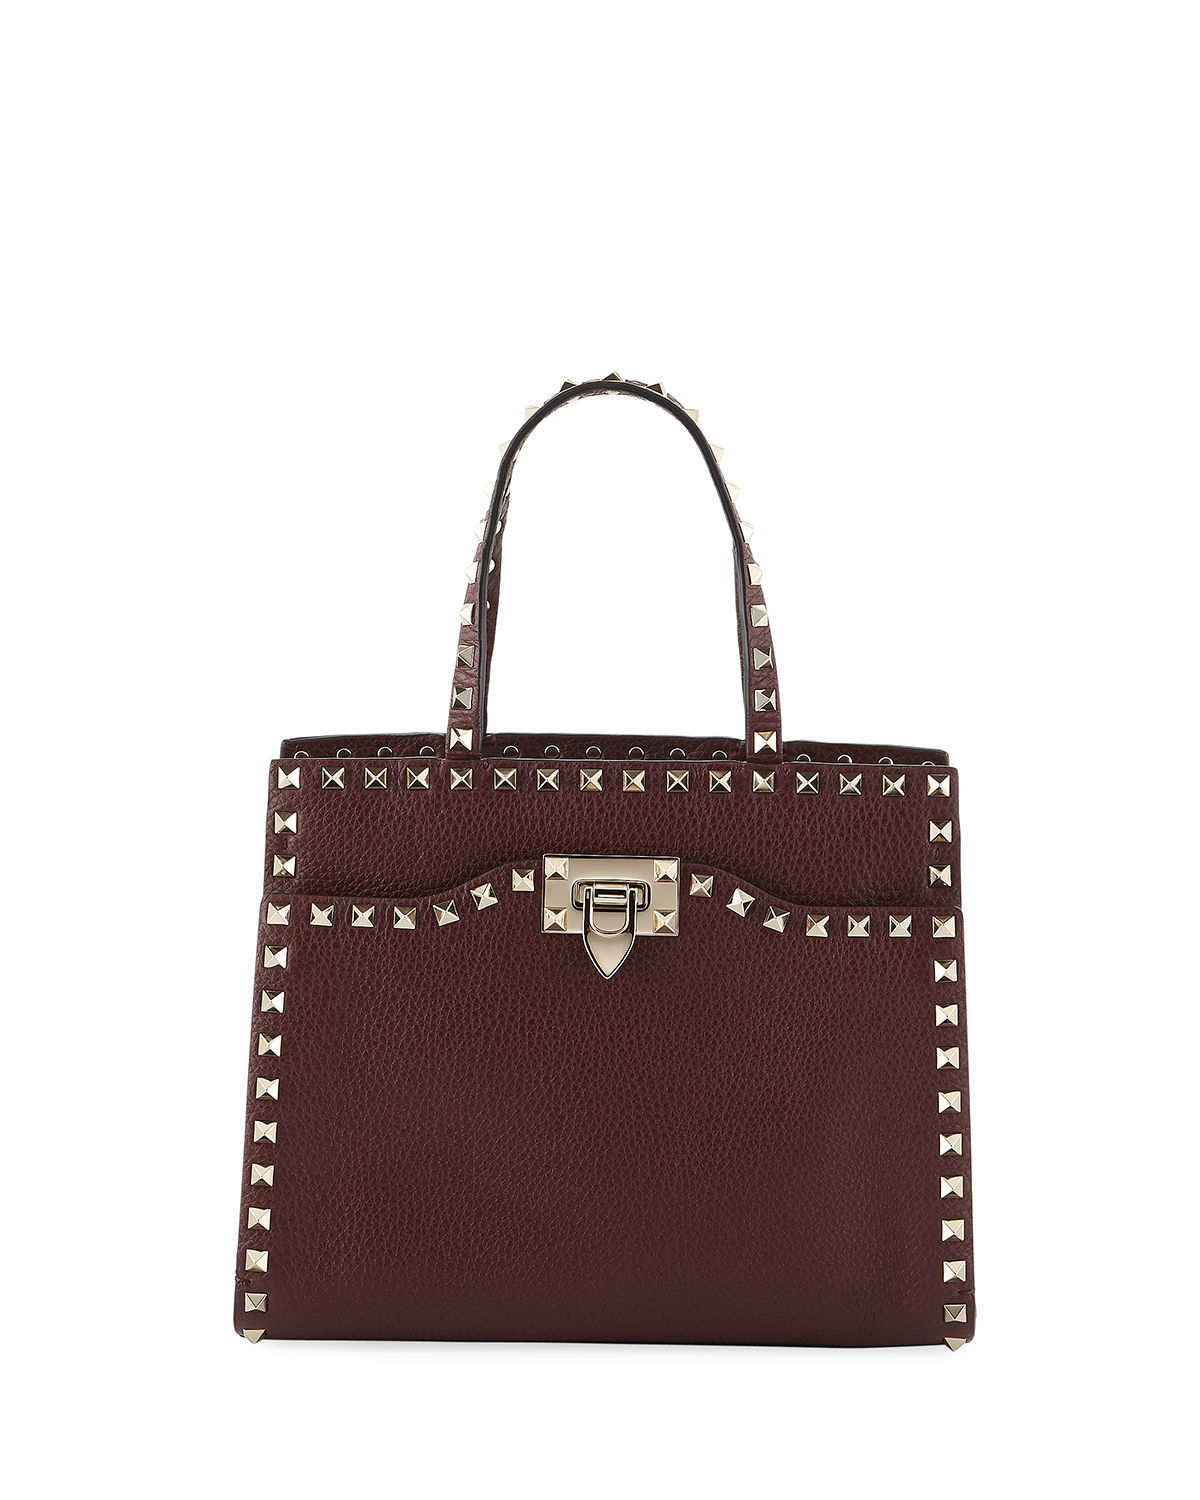 f273b76d55a Valentino Garavani Rockstud Small Vitello Leather Tote Bag